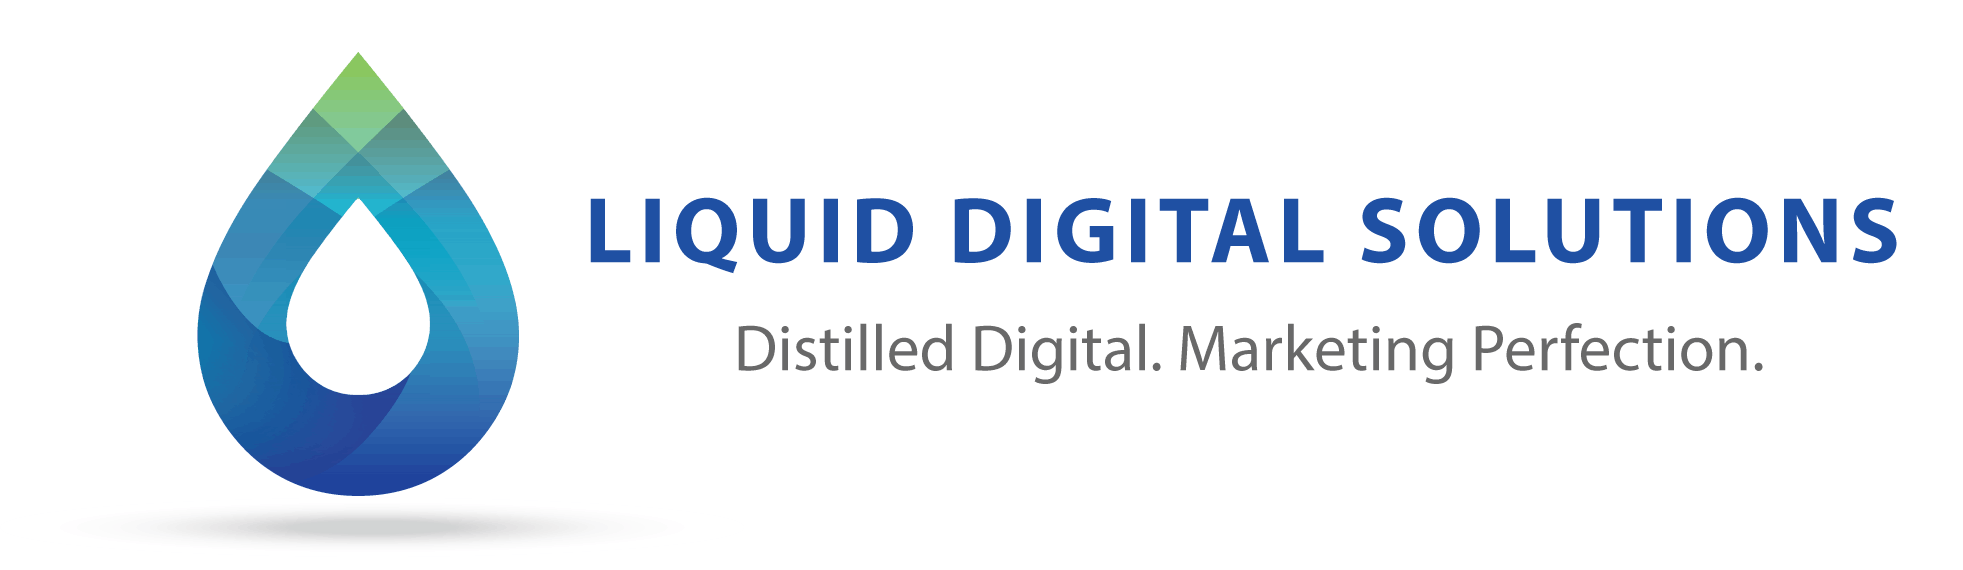 Liquid Digital Solutions. Distilled Digital. Marketing Perfection.